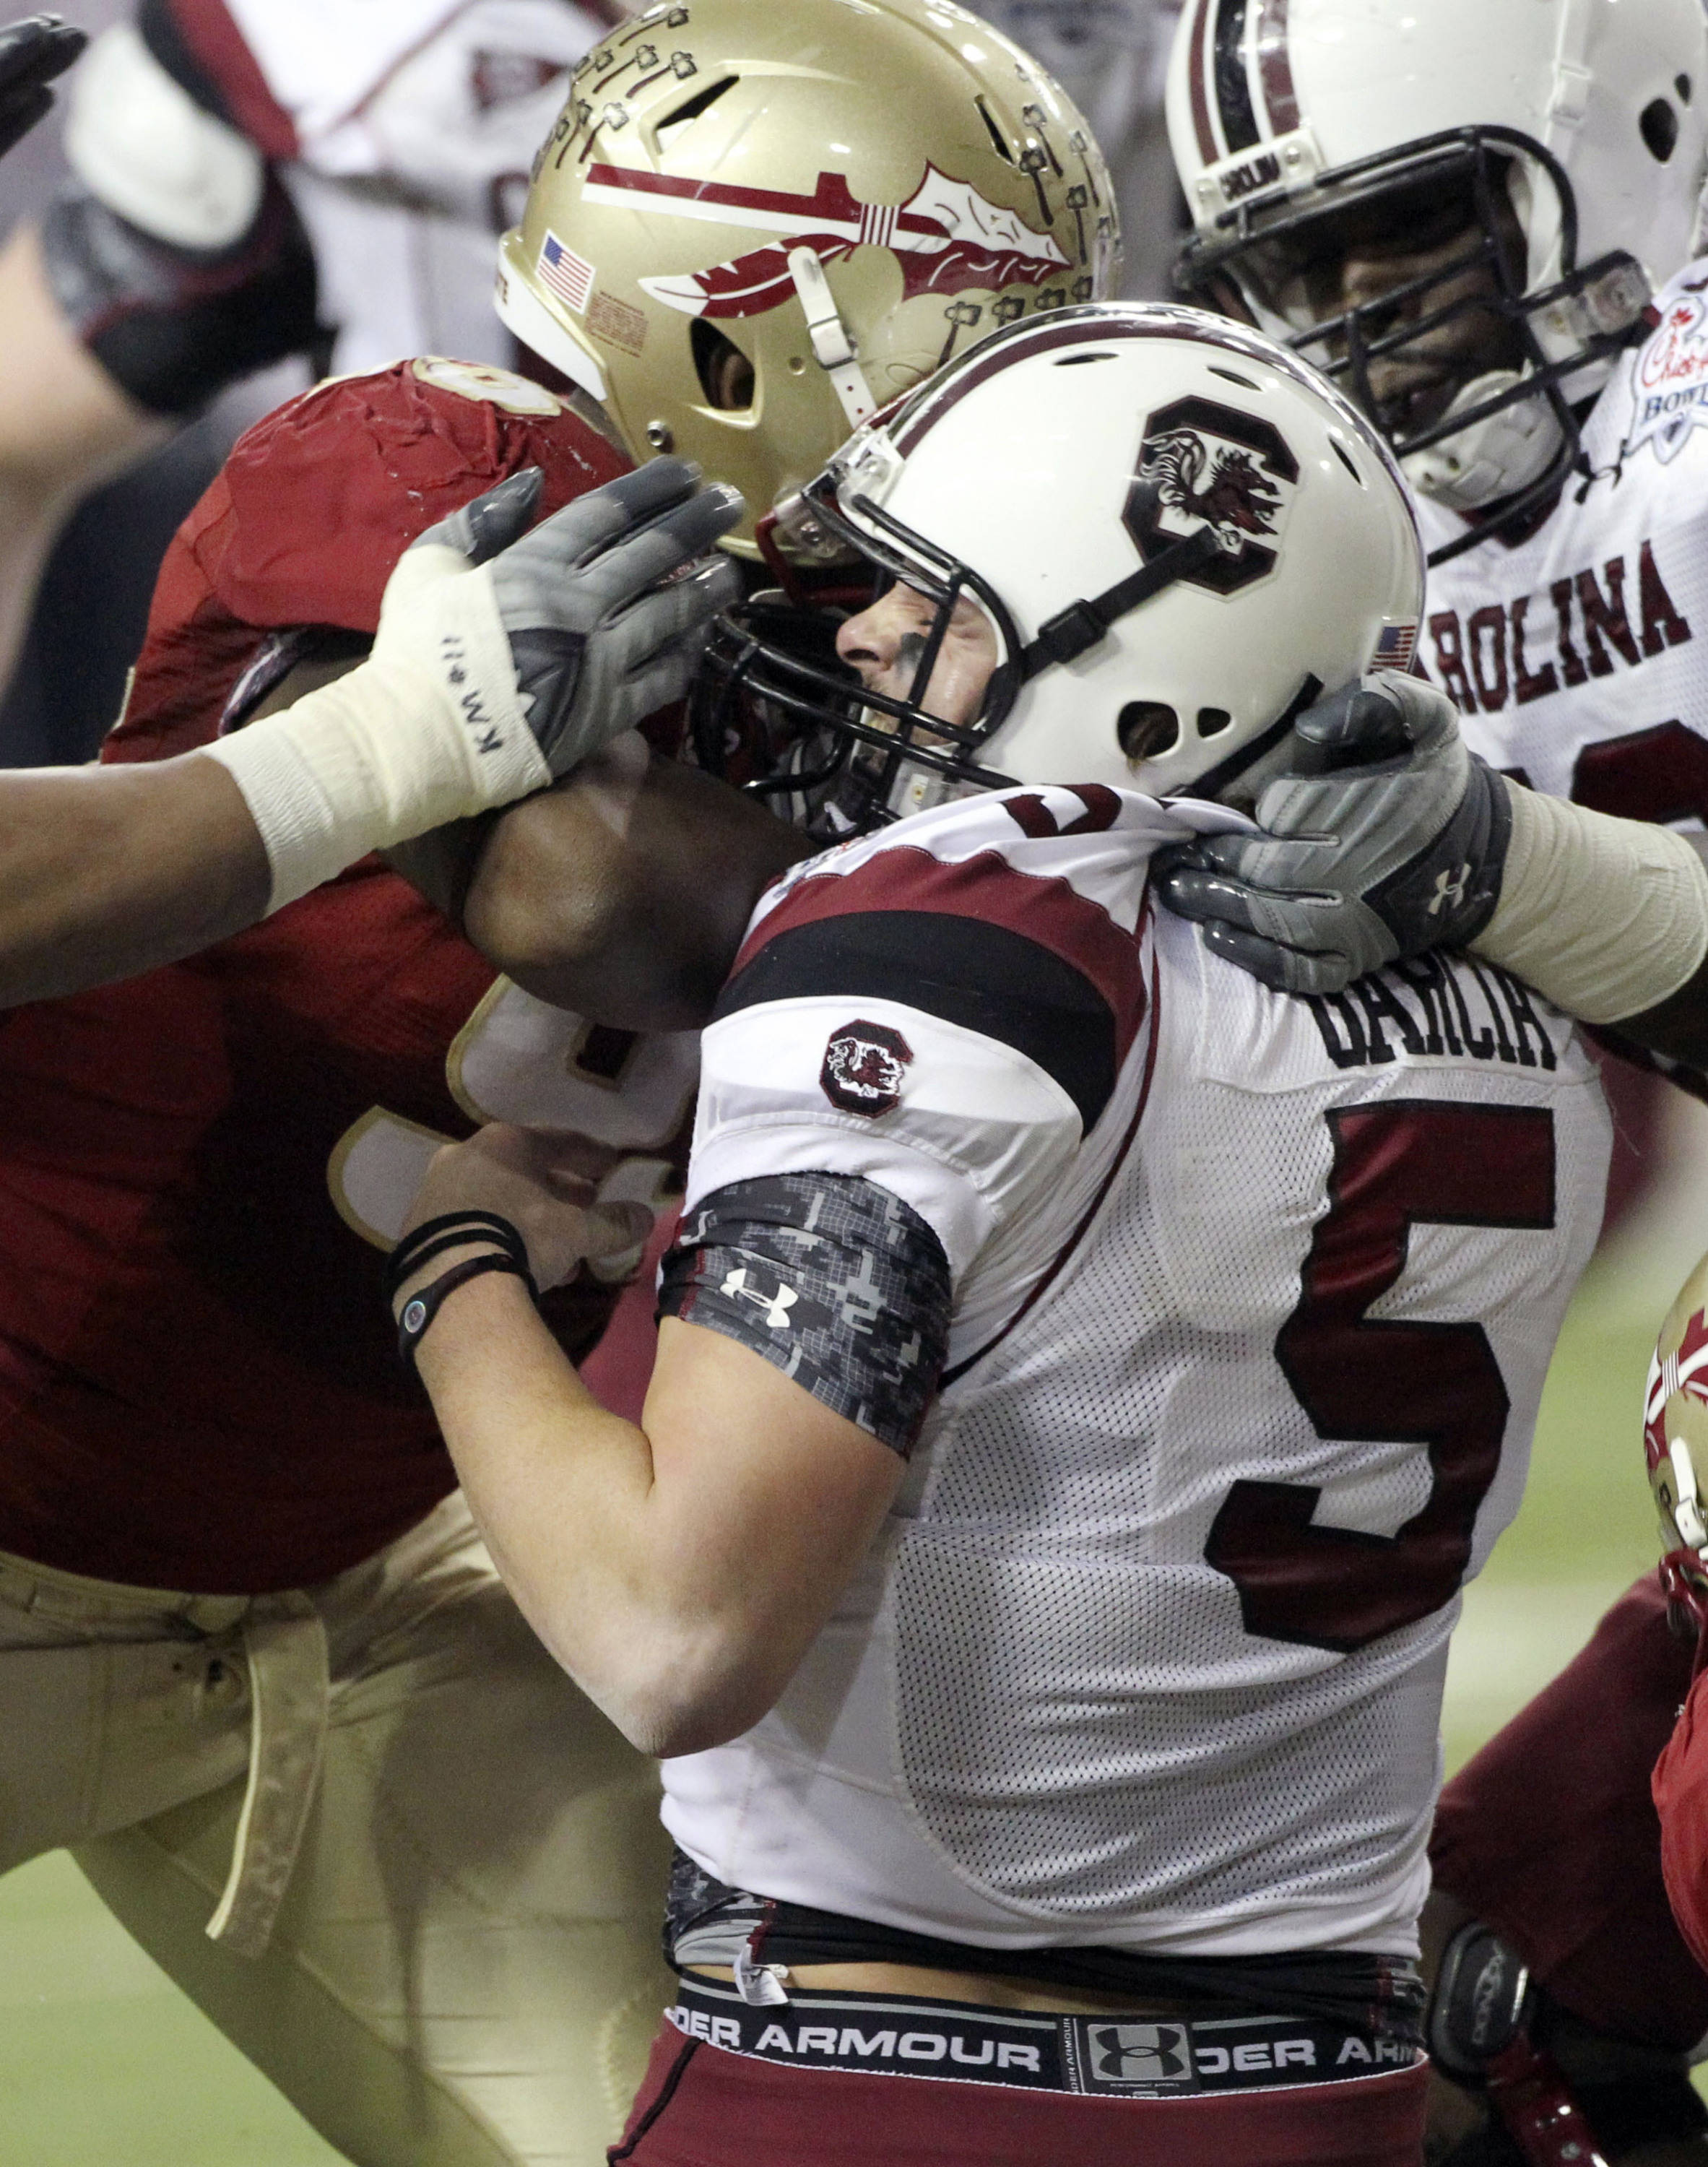 South Carolina quarterback Stephen Garcia (5) is brought down by Florida State defensive tackle Everett Dawkins (93) in the first quarter of the Chick-fil-A Bowl NCAA college football game on Friday, Dec. 31, 2010, in Atlanta. (AP Photo/John Bazemore)